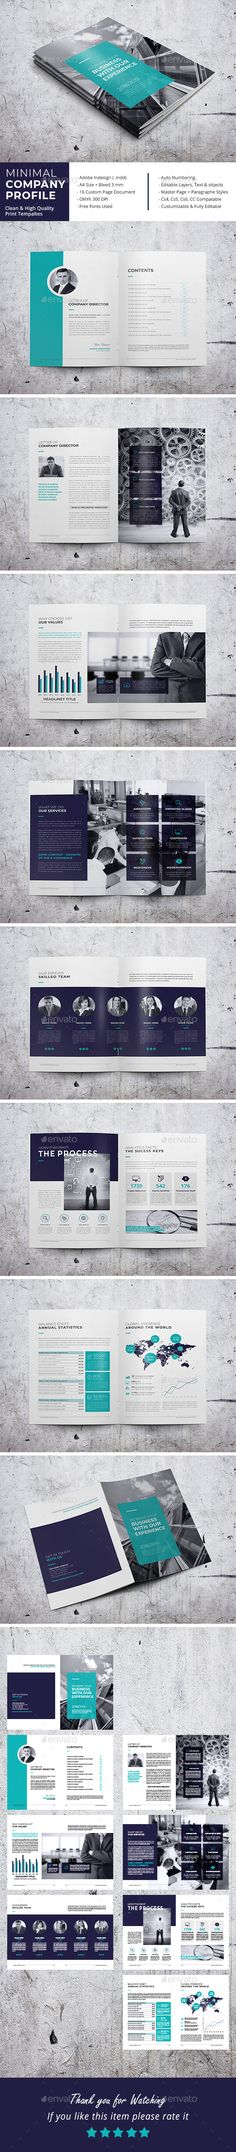 Minimal Company Profile Brochure Template InDesign INDD